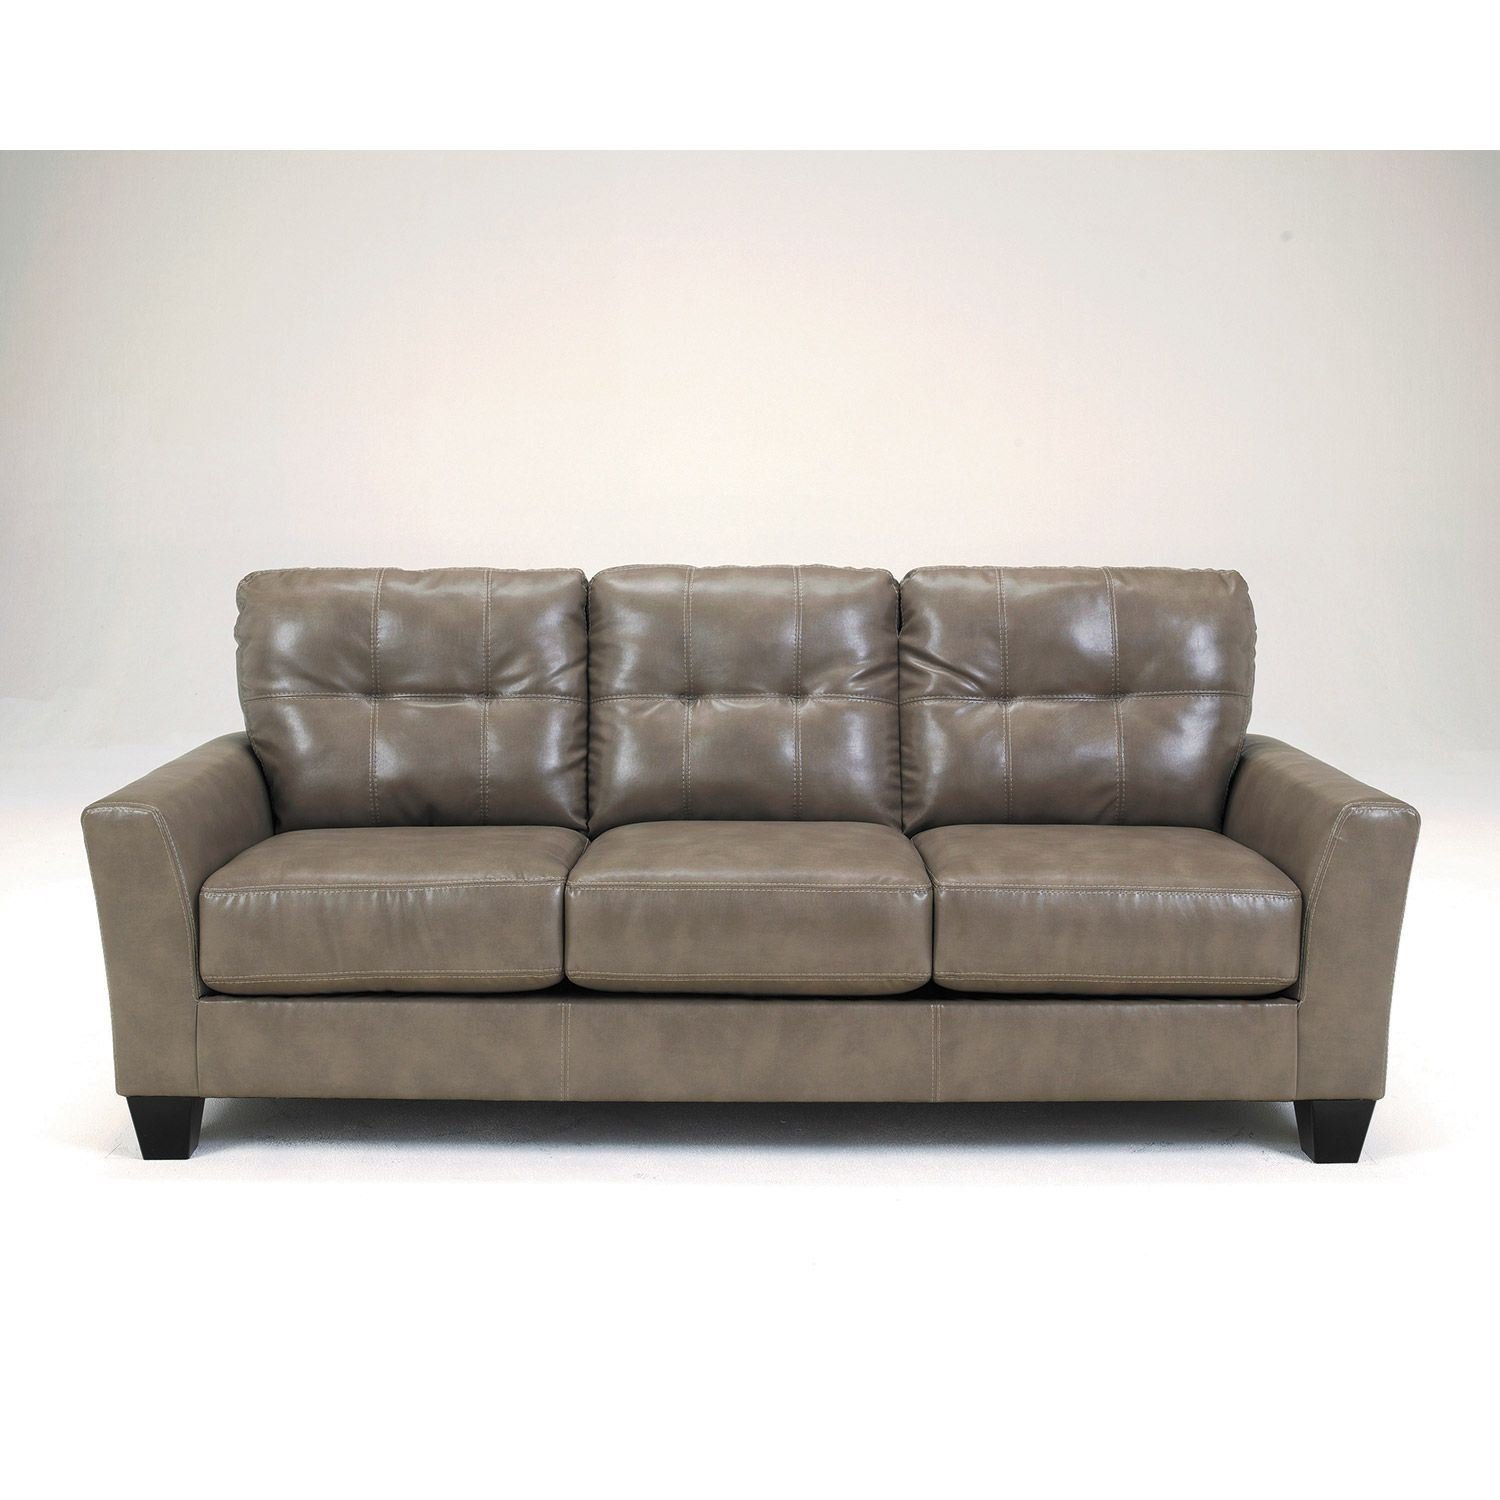 Quarry Bonded Leather Sofa 0B2 270S Ashley